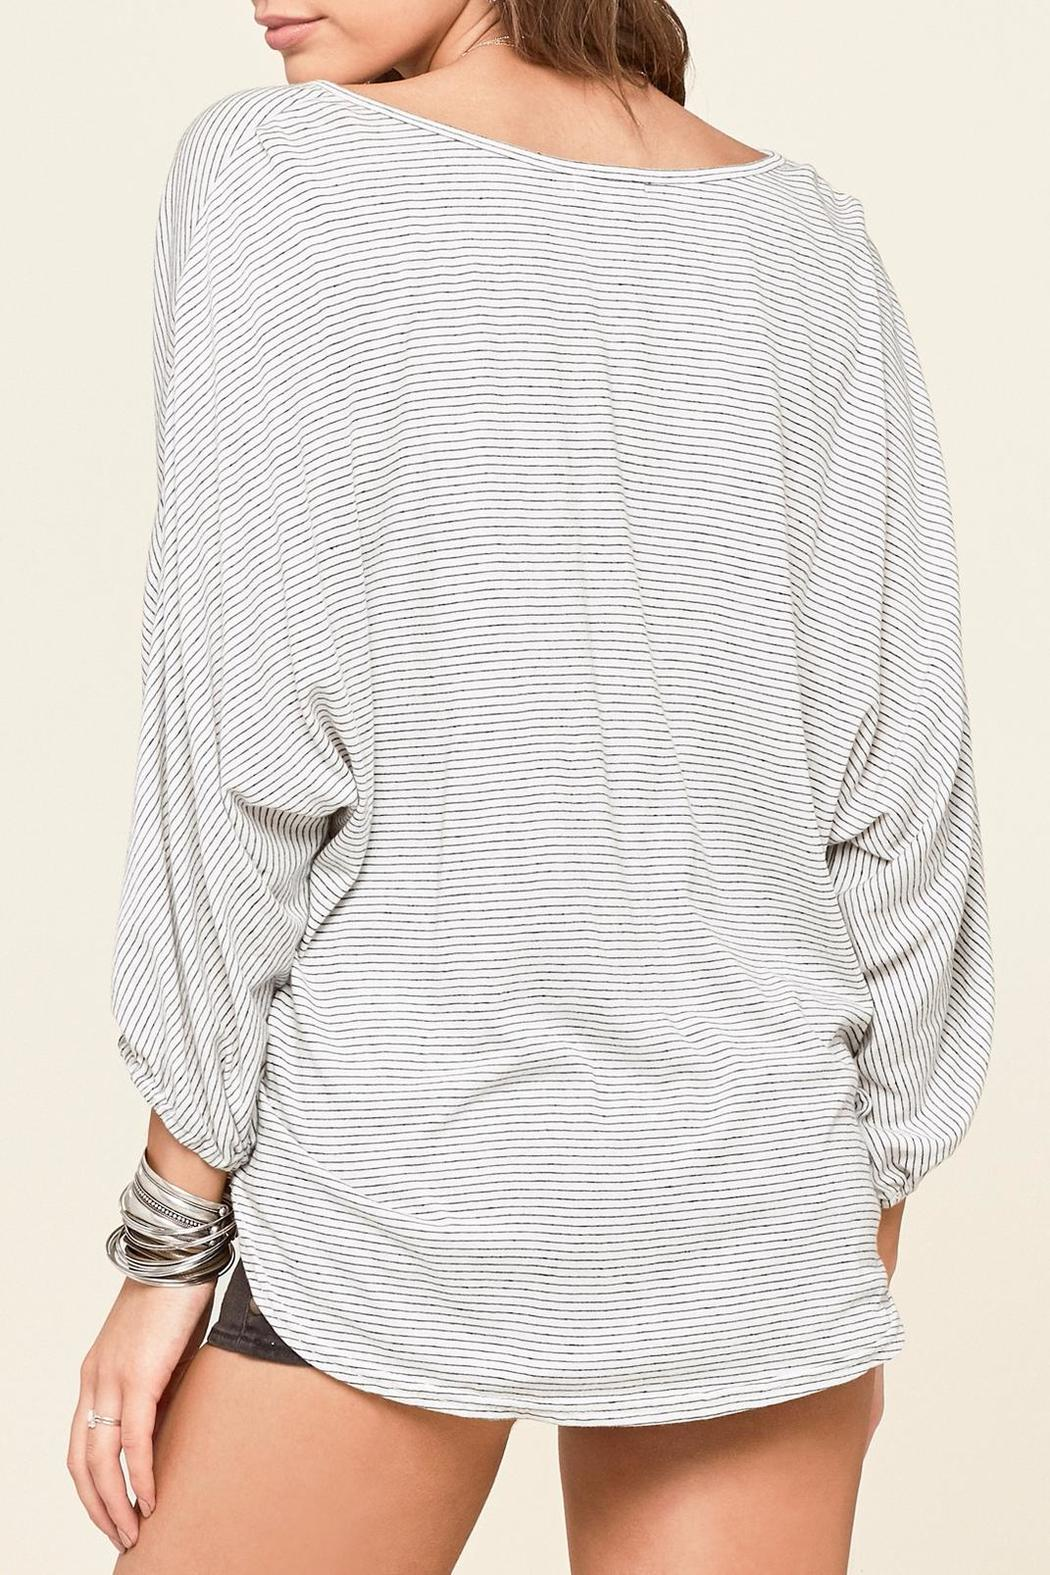 AMUSE SOCIETY Bedford Knit Top - Front Full Image